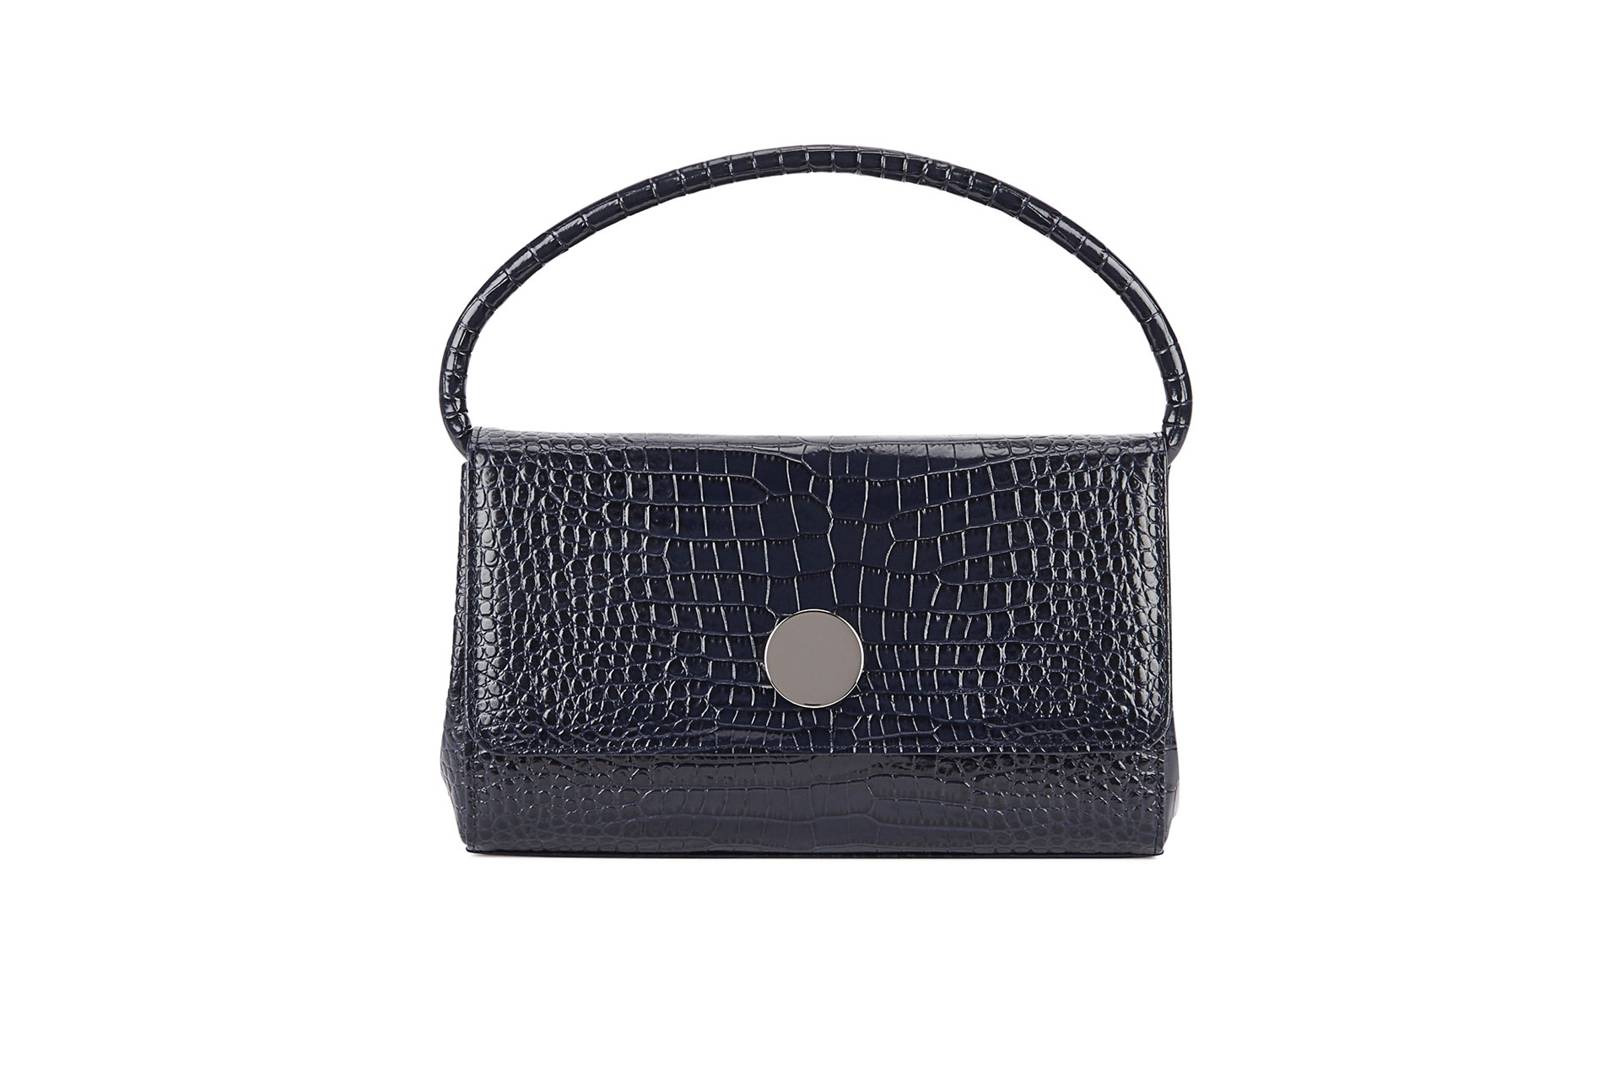 103848aed6 The Best '90s Shoulder Bags To Buy Now | British Vogue